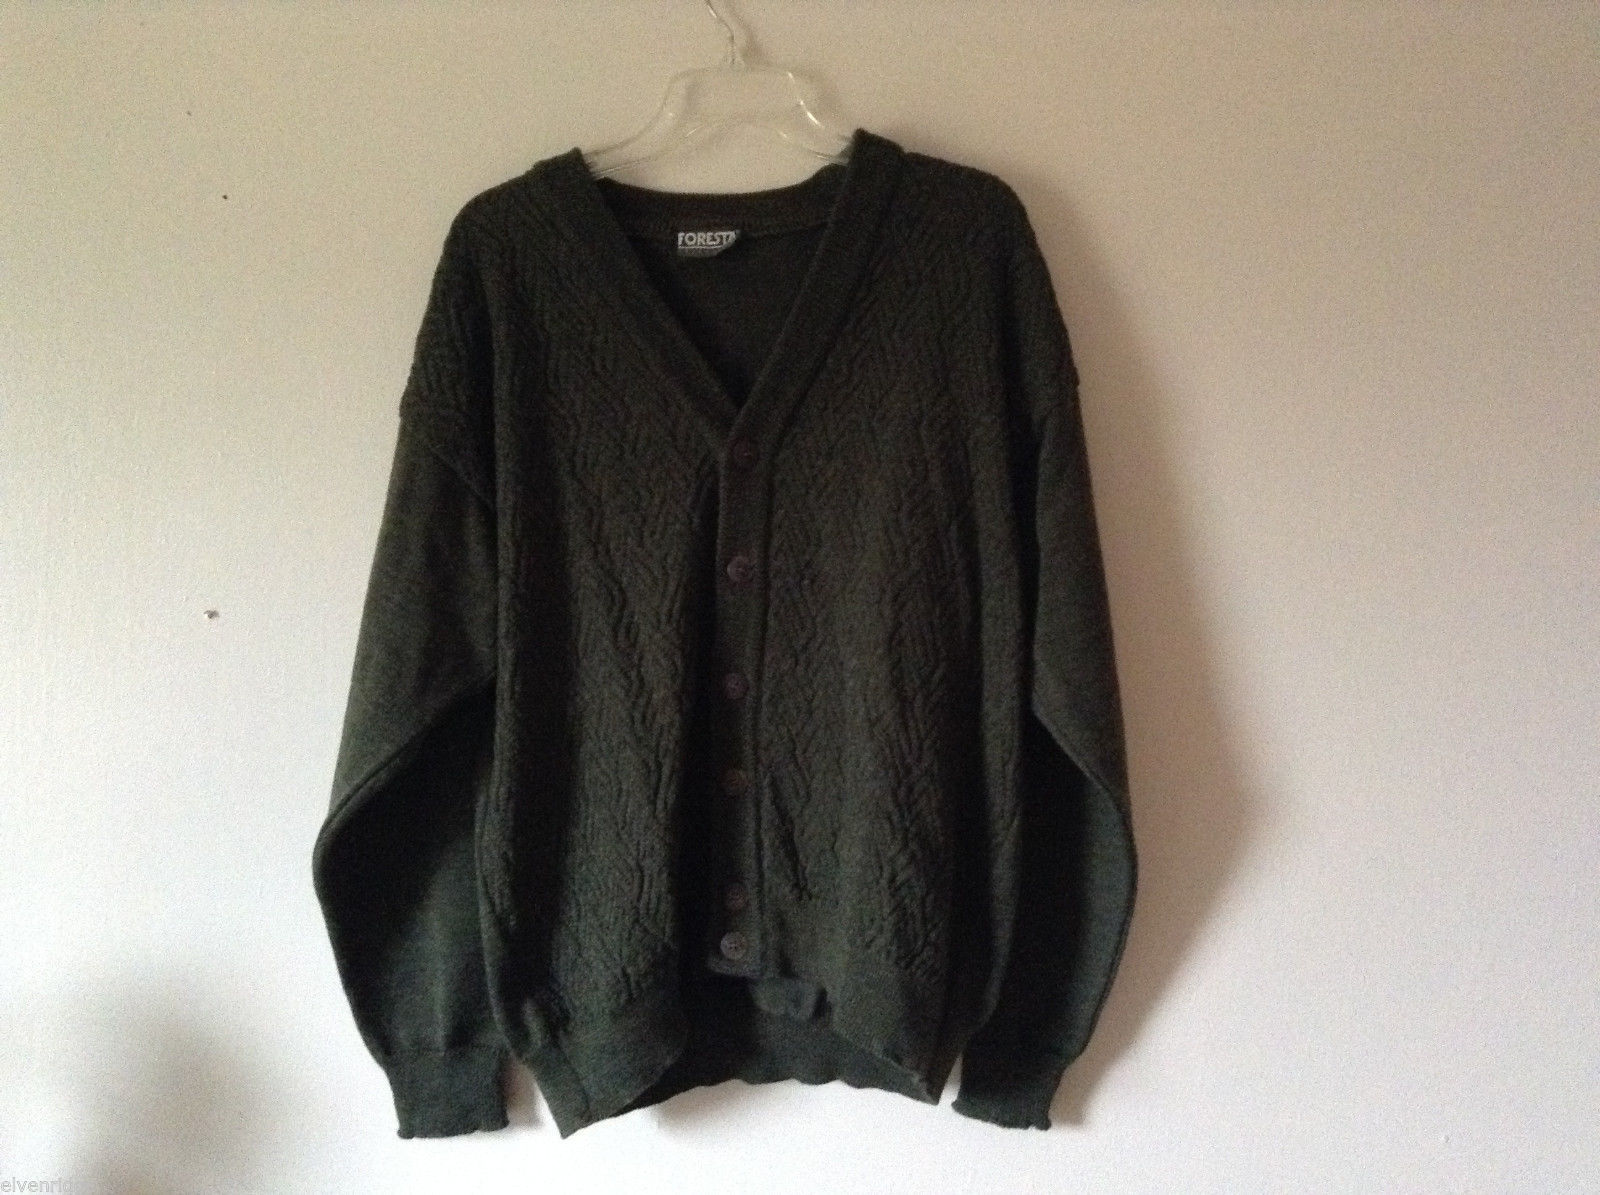 Foresta Men's Size XL Dark Green Button Down Cardigan Chevron Knit